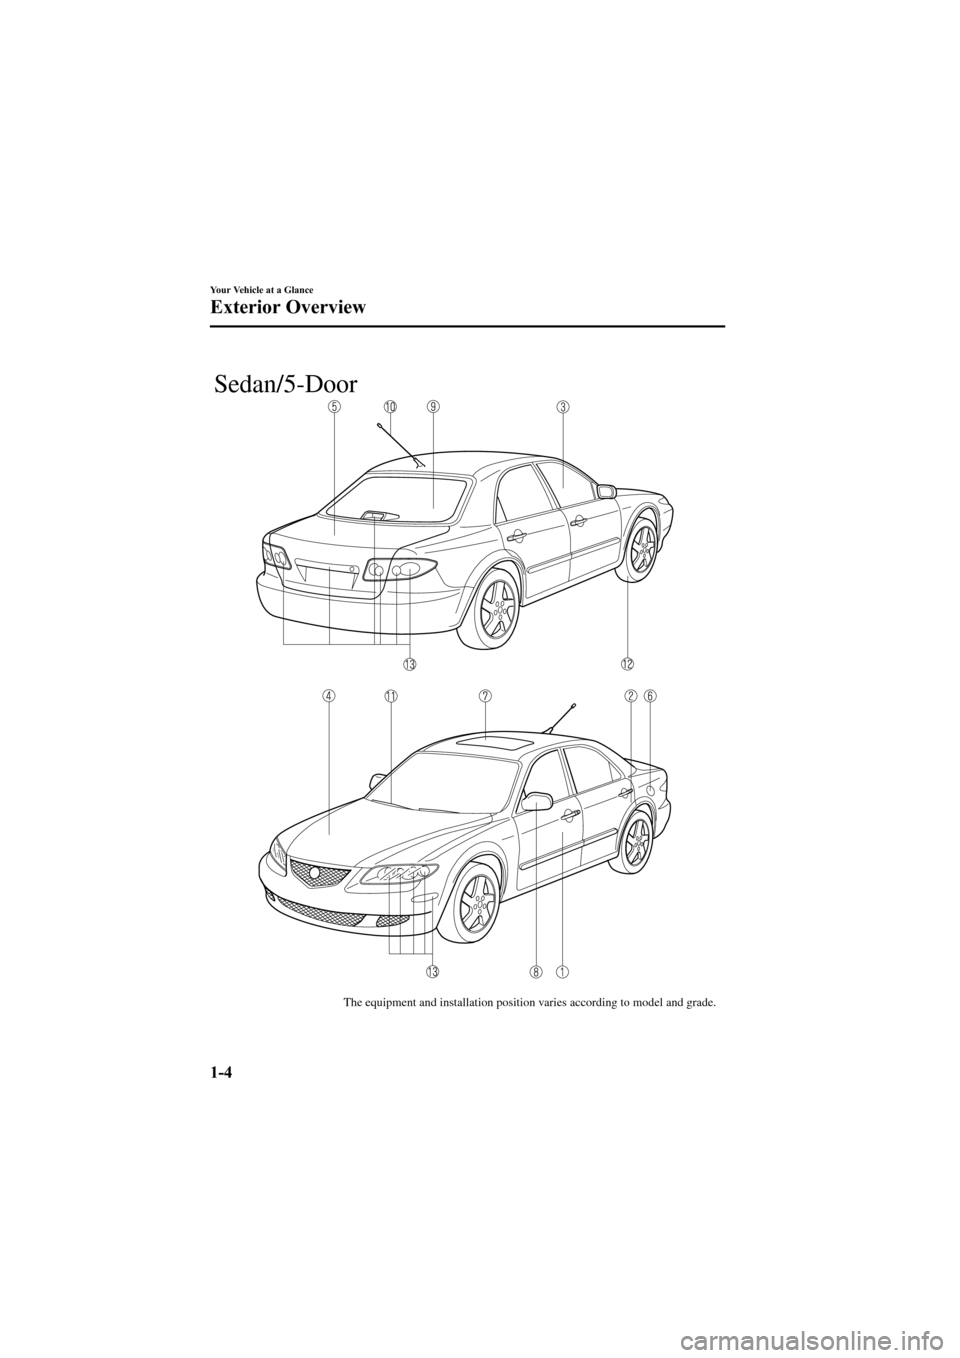 MAZDA MODEL 6 2005  Owners Manual (in English) Black plate (10,1) The equipment and installation position varies according to model and grade. Sedan/5-Door 1-4 Your Vehicle at a Glance Exterior Overview Mazda6_8T56-EC-04G_Edition2 Page10 Monday, N